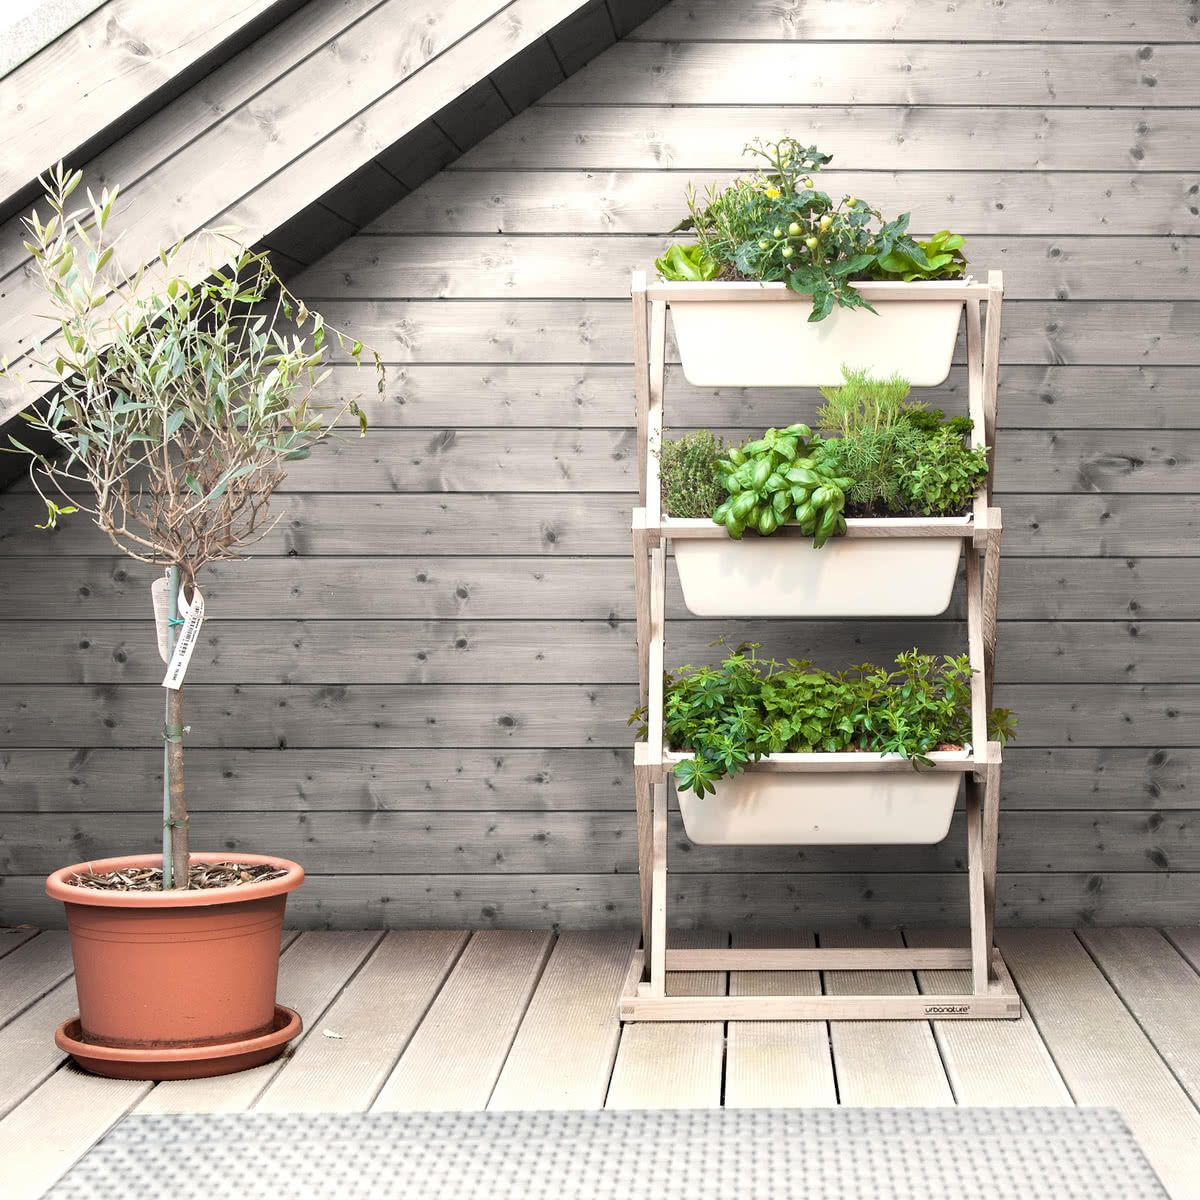 The Vertical Garden By Urbanature In The Shop